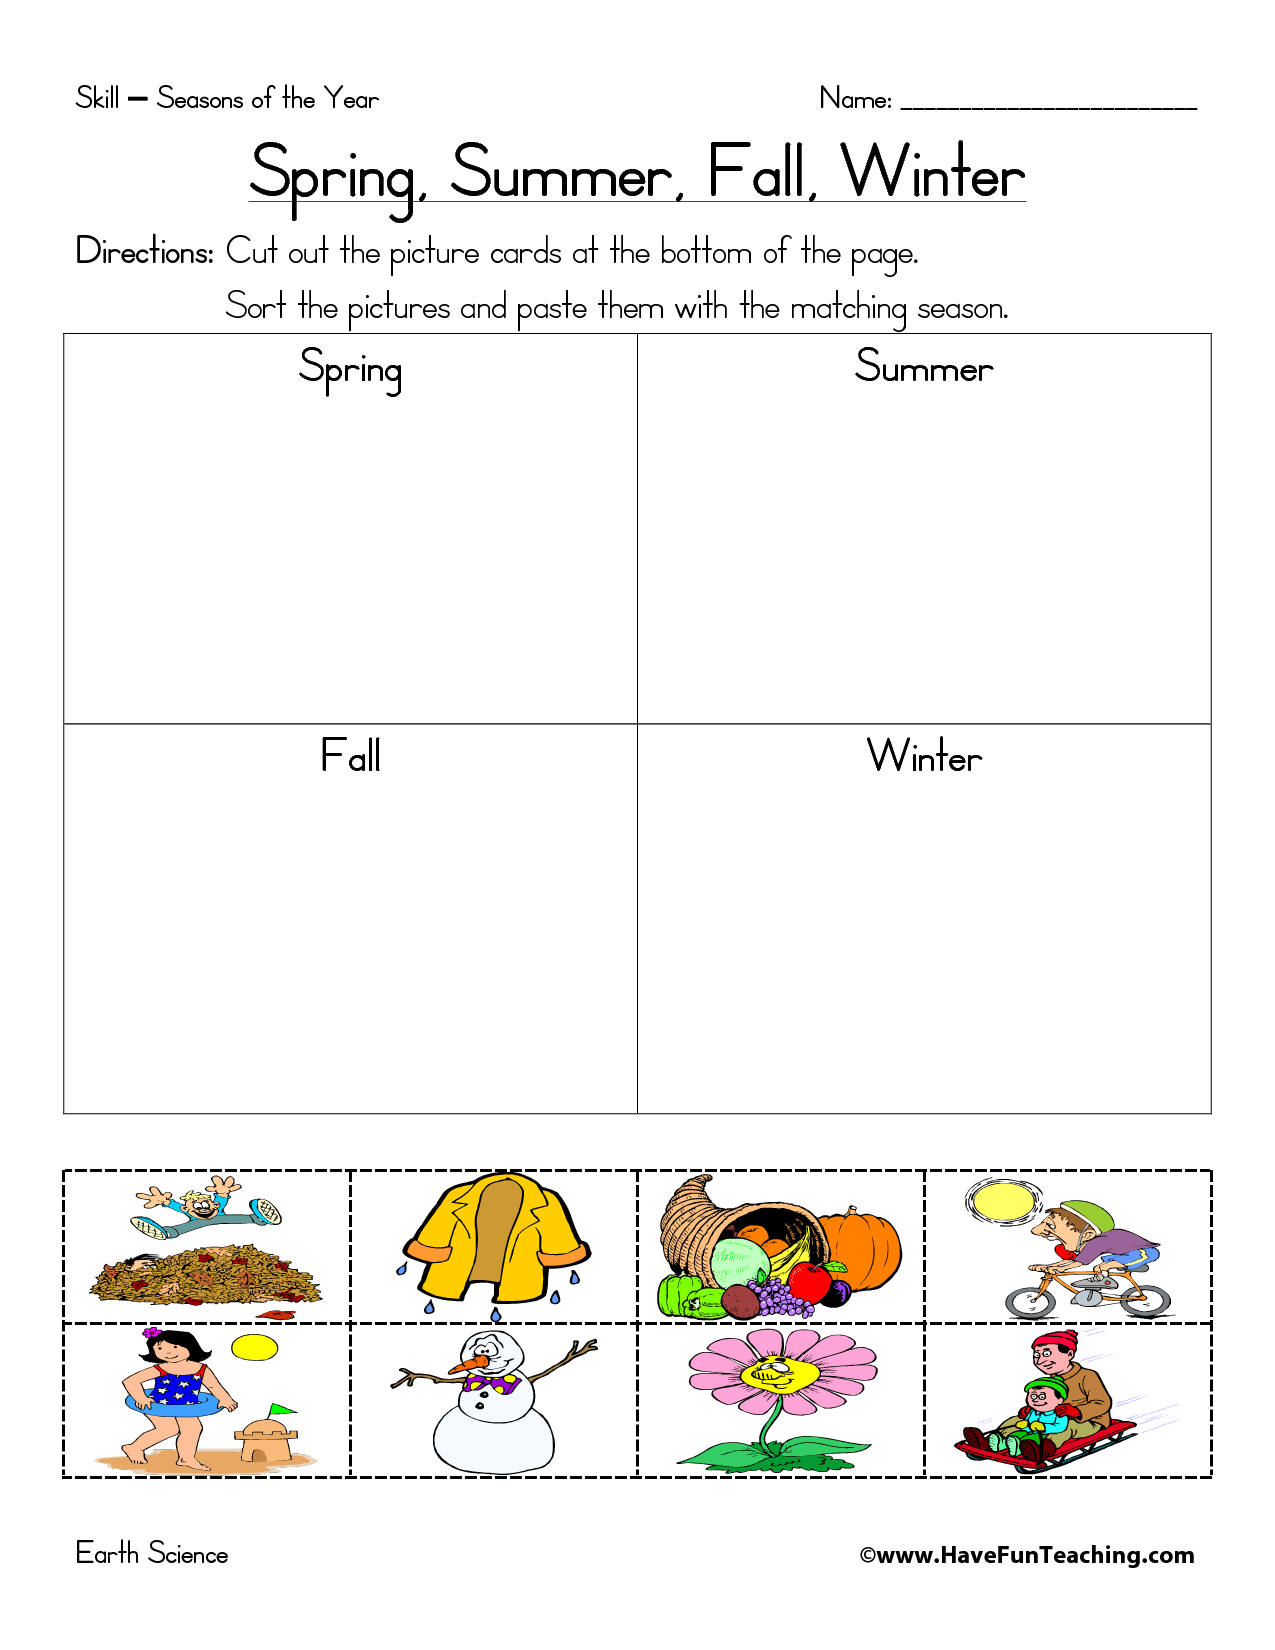 Matching Worksheet About Earth